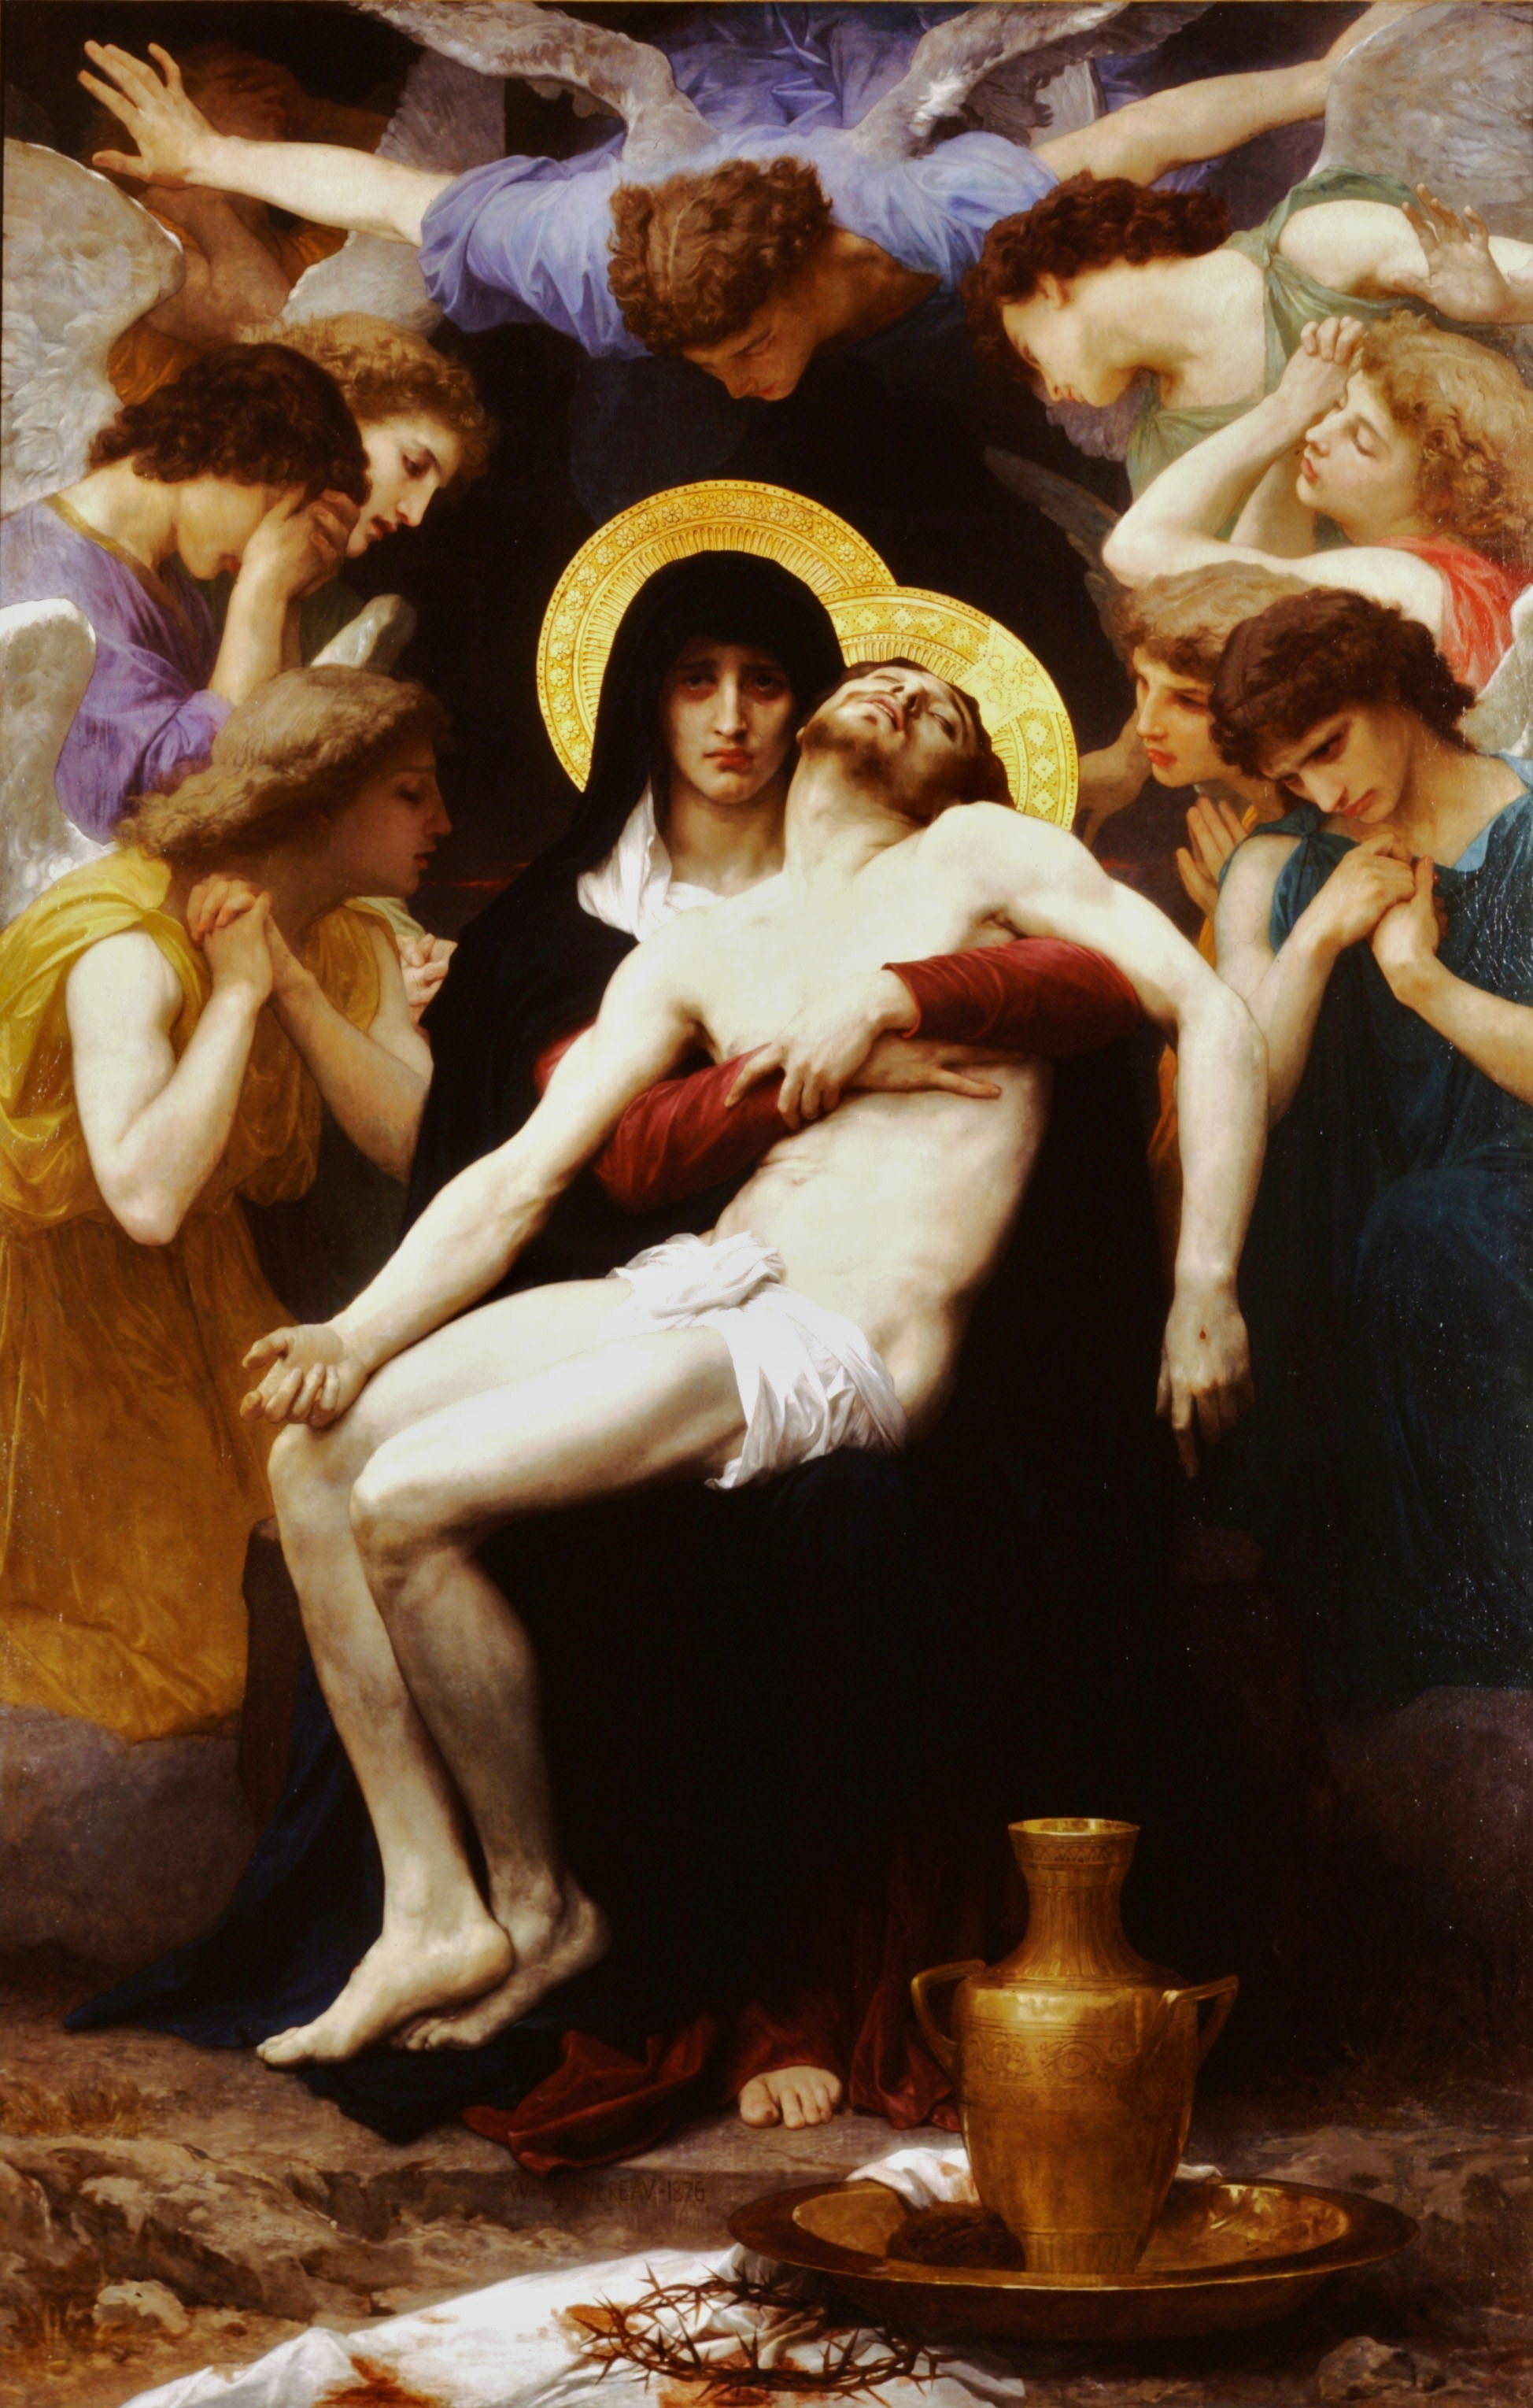 William-Adolphe_Bouguereau_%281825-1905%29_-_Pieta_%281876%29_modif.jpg